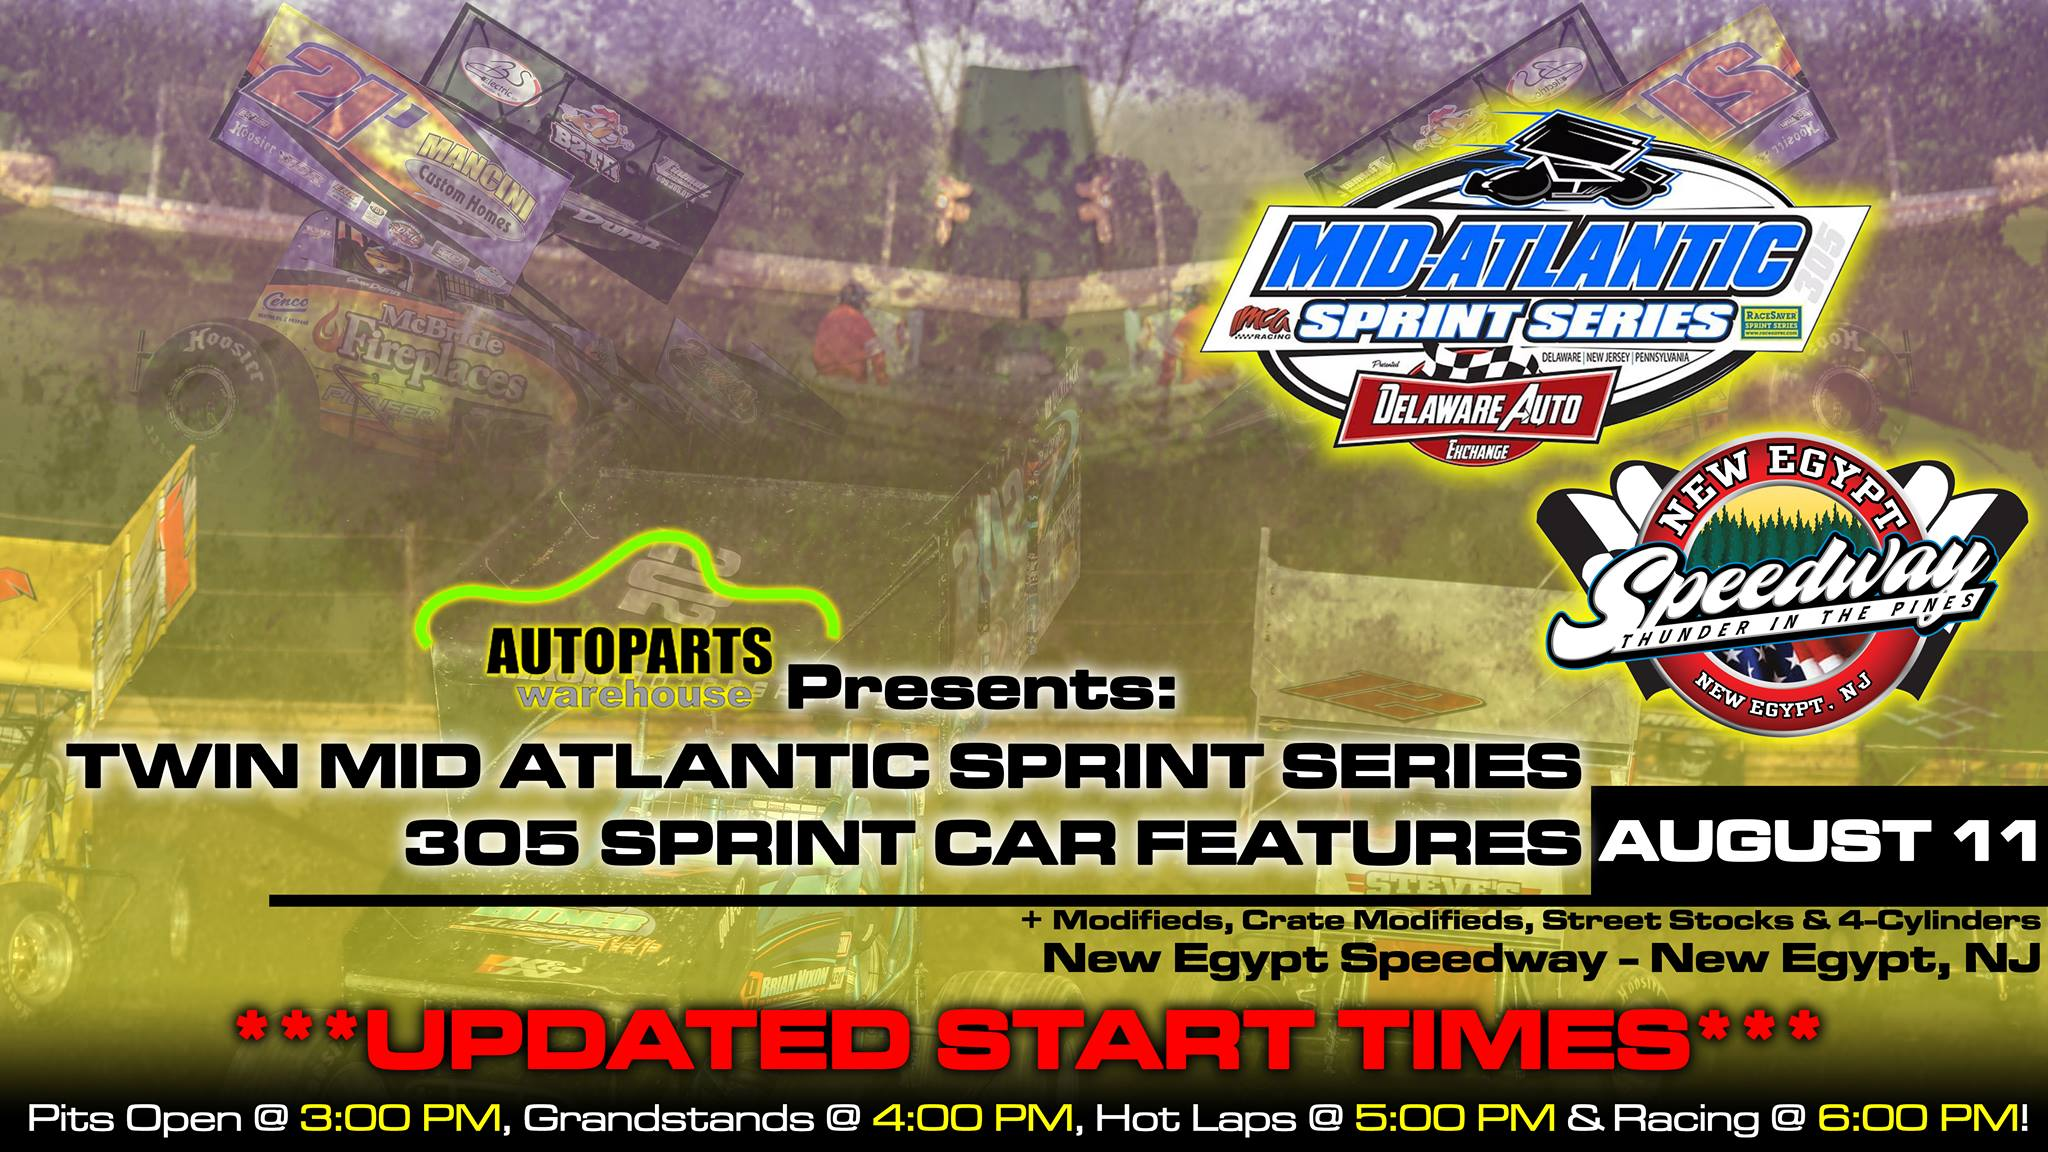 EASTERN AUTOPARTS WAREHOUSE NIGHT TO SHOWCASE SIX FEATURE EVENTS WITH A NEW START TIME OF 6:00 PM AT NEW EGYPT SPEEDWAY ON SATURDAY, AUGUST 11